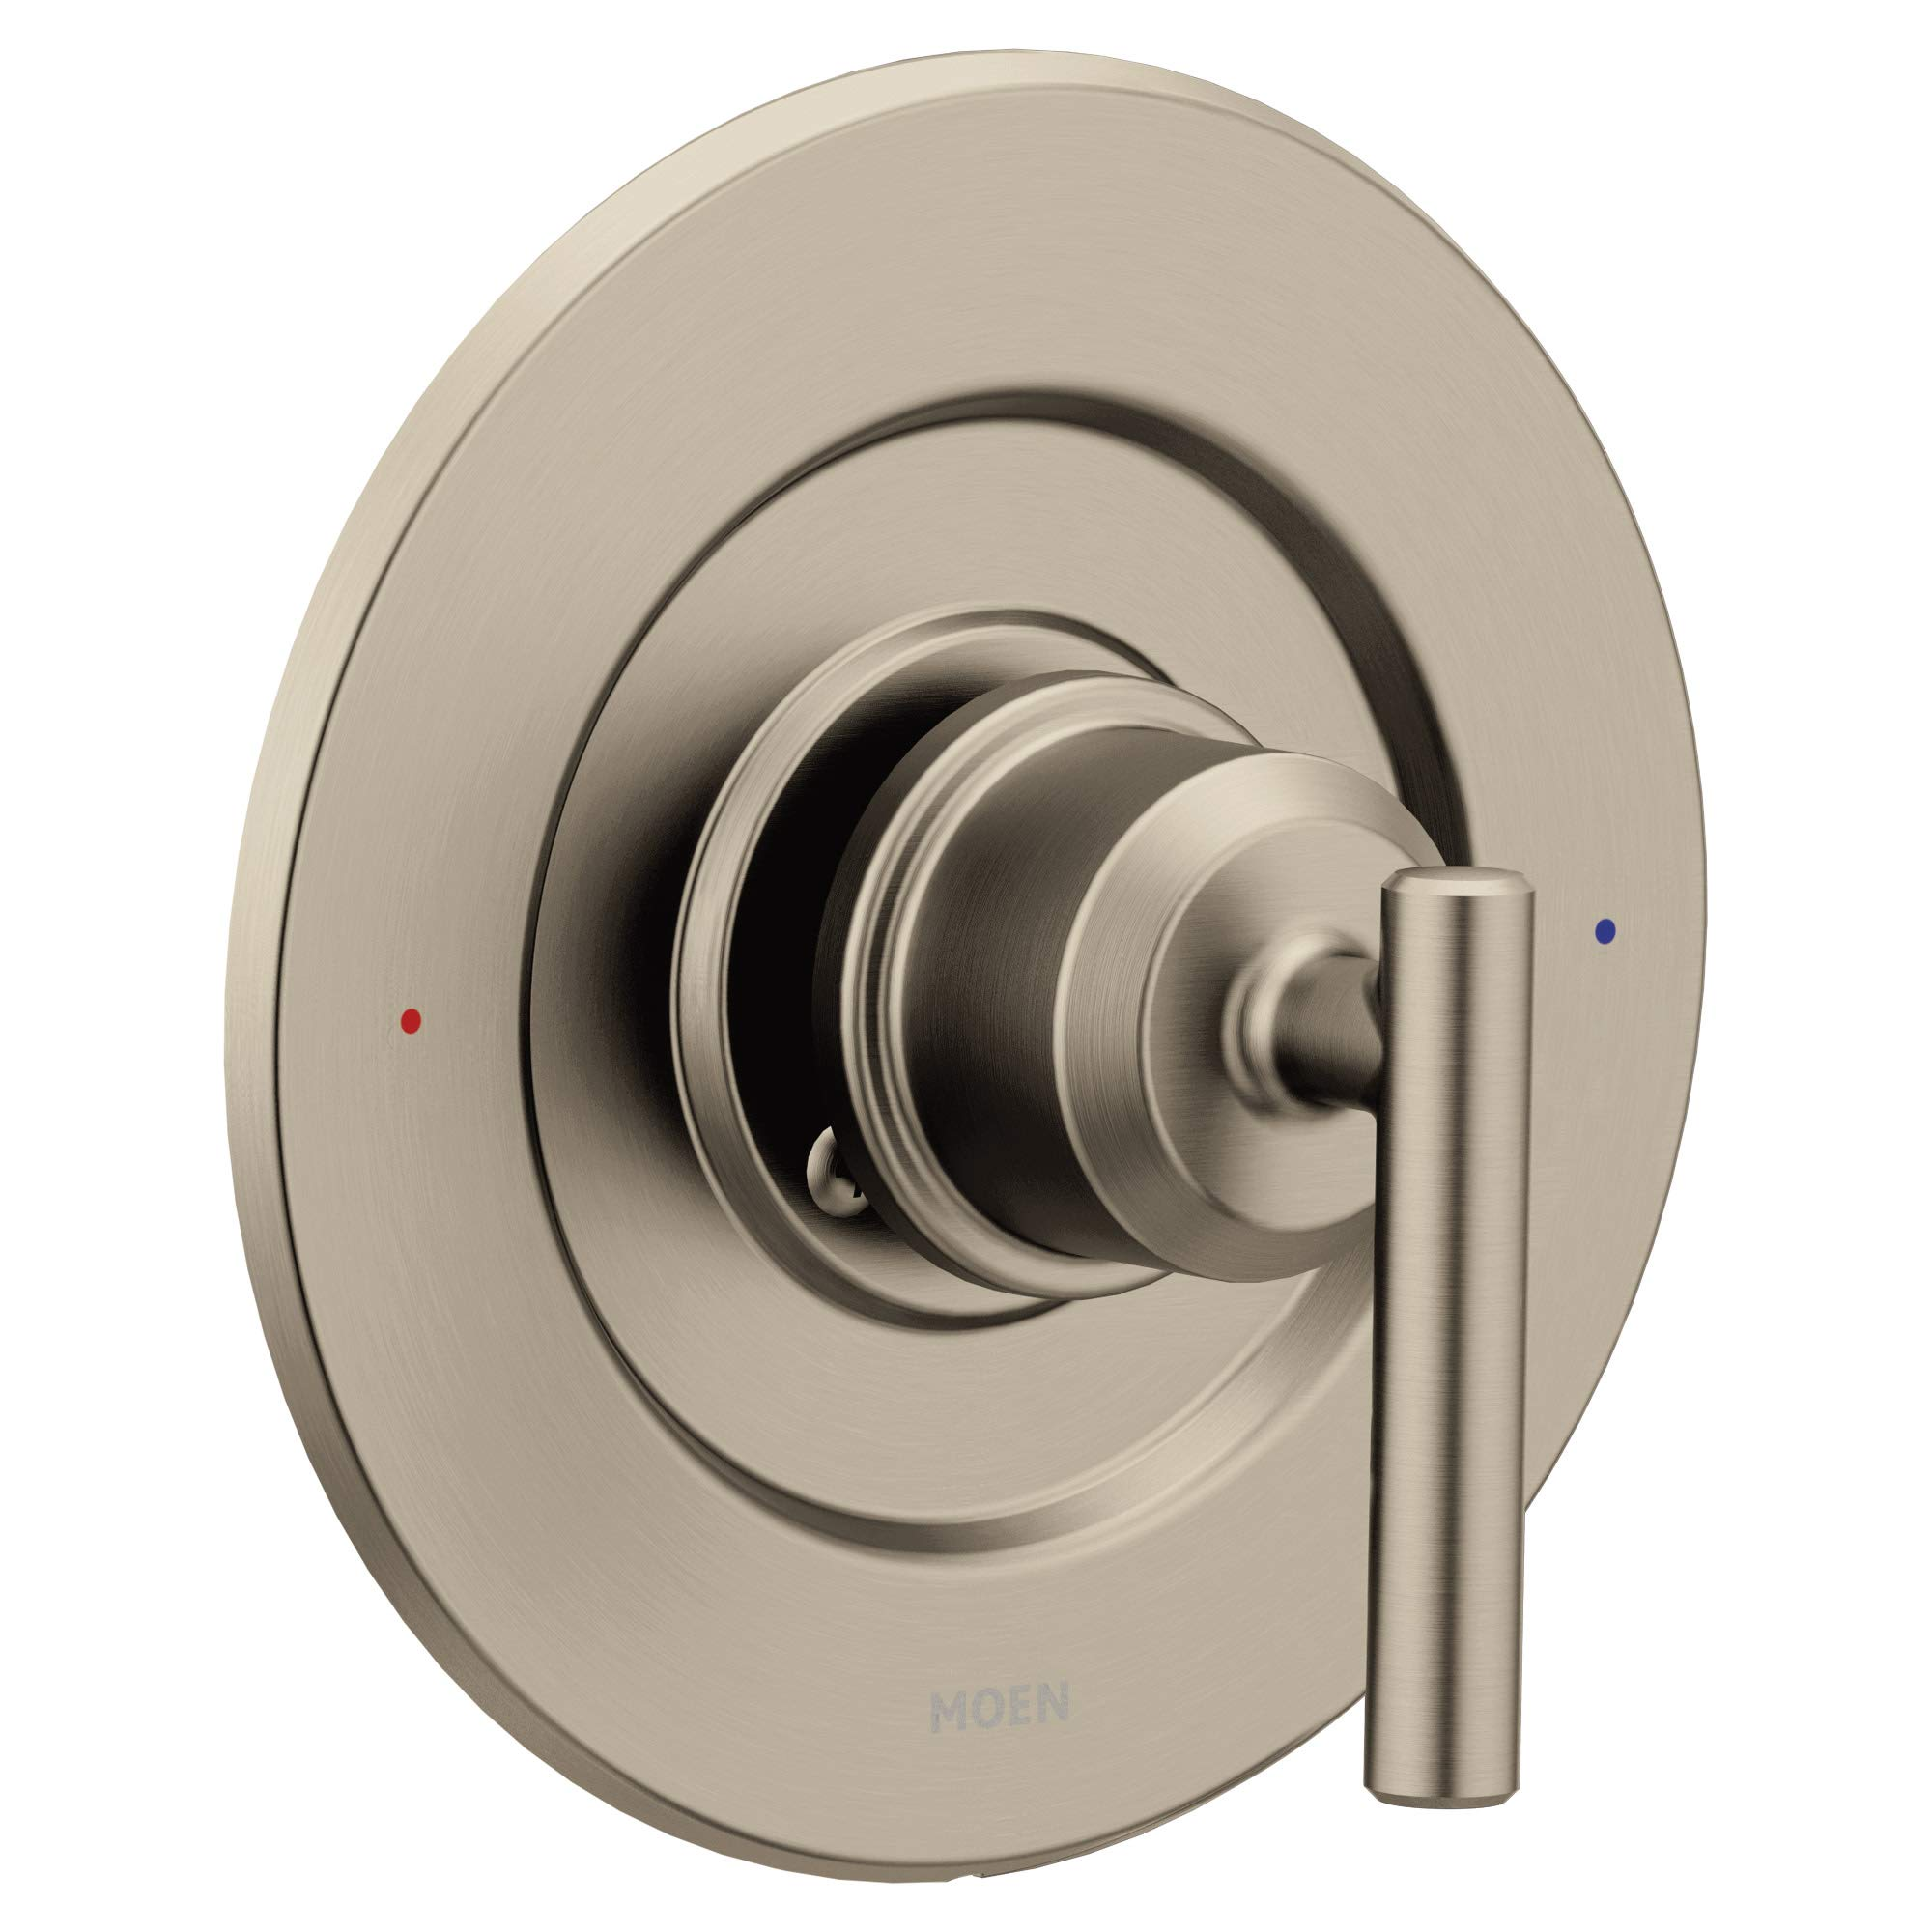 Moen T2901BN Gibson Posi-Temp Pressure-Balancing Modern Valve Trim, Valve Required, Brushed Nickel by Moen (Image #1)